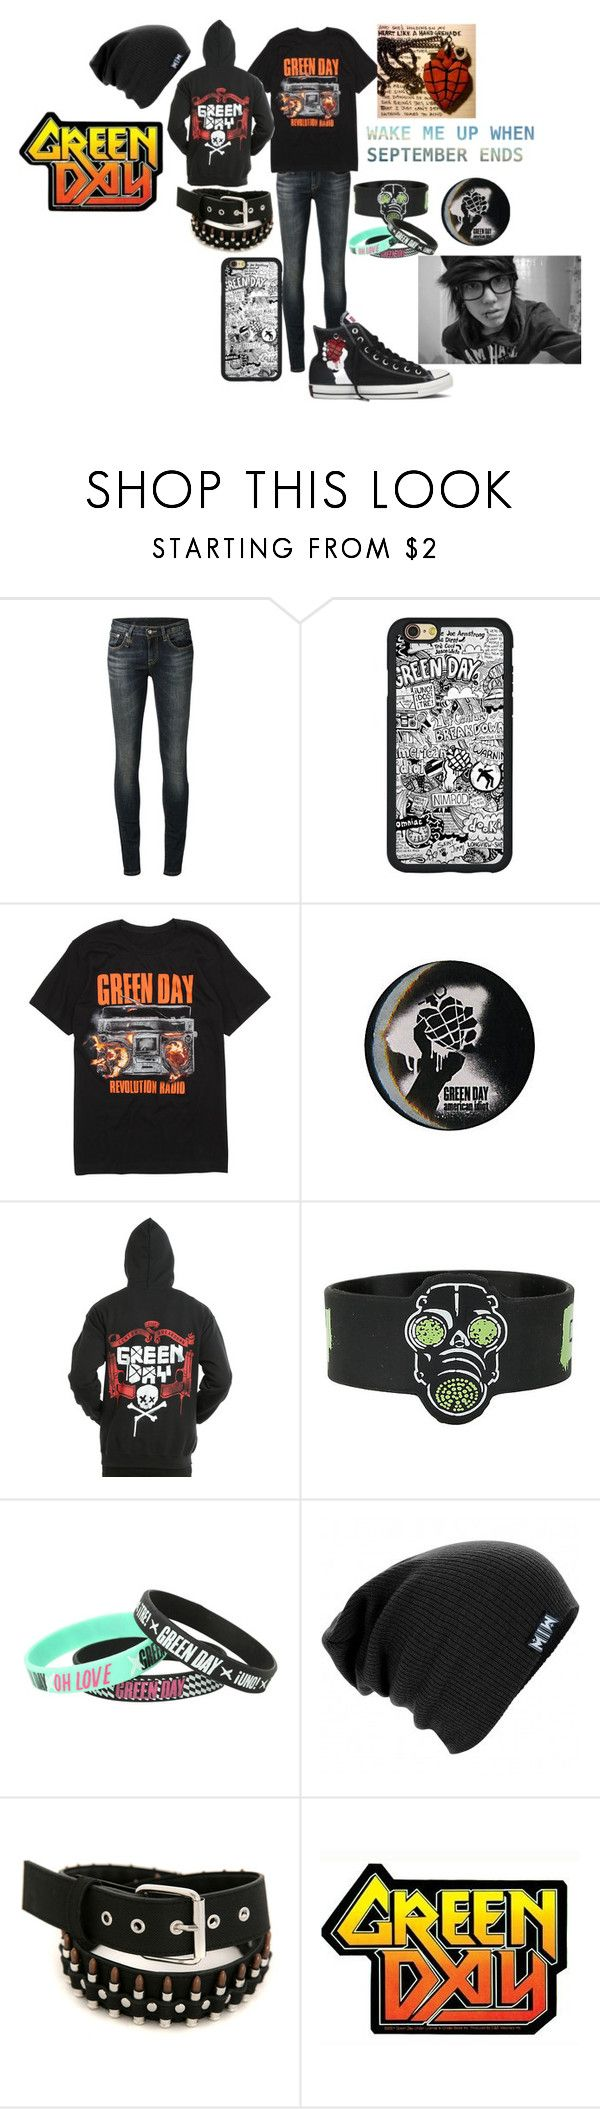 """d3d696e6c0ed77087cfae55603b1c32f - """"Untitled #454"""" by dino-satan666 ❤ liked on Polyvore featuring R13, Hot Topic ..."""